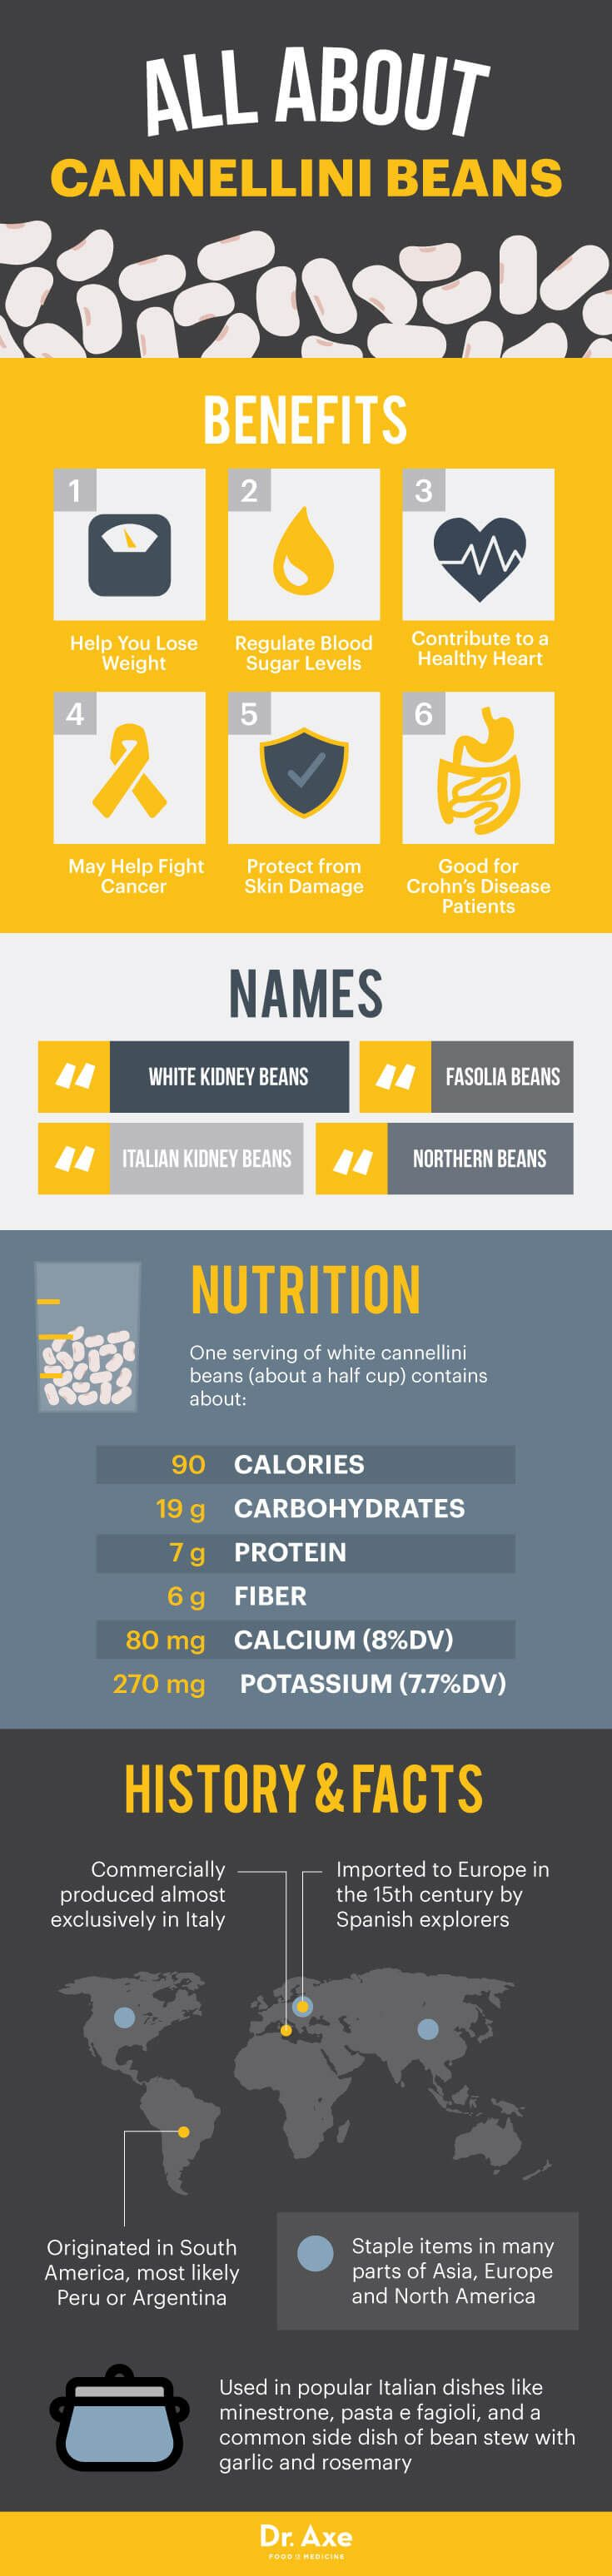 All about cannellini beans - Dr. Axe http://www.DrAxe.com #health #holistic #natural